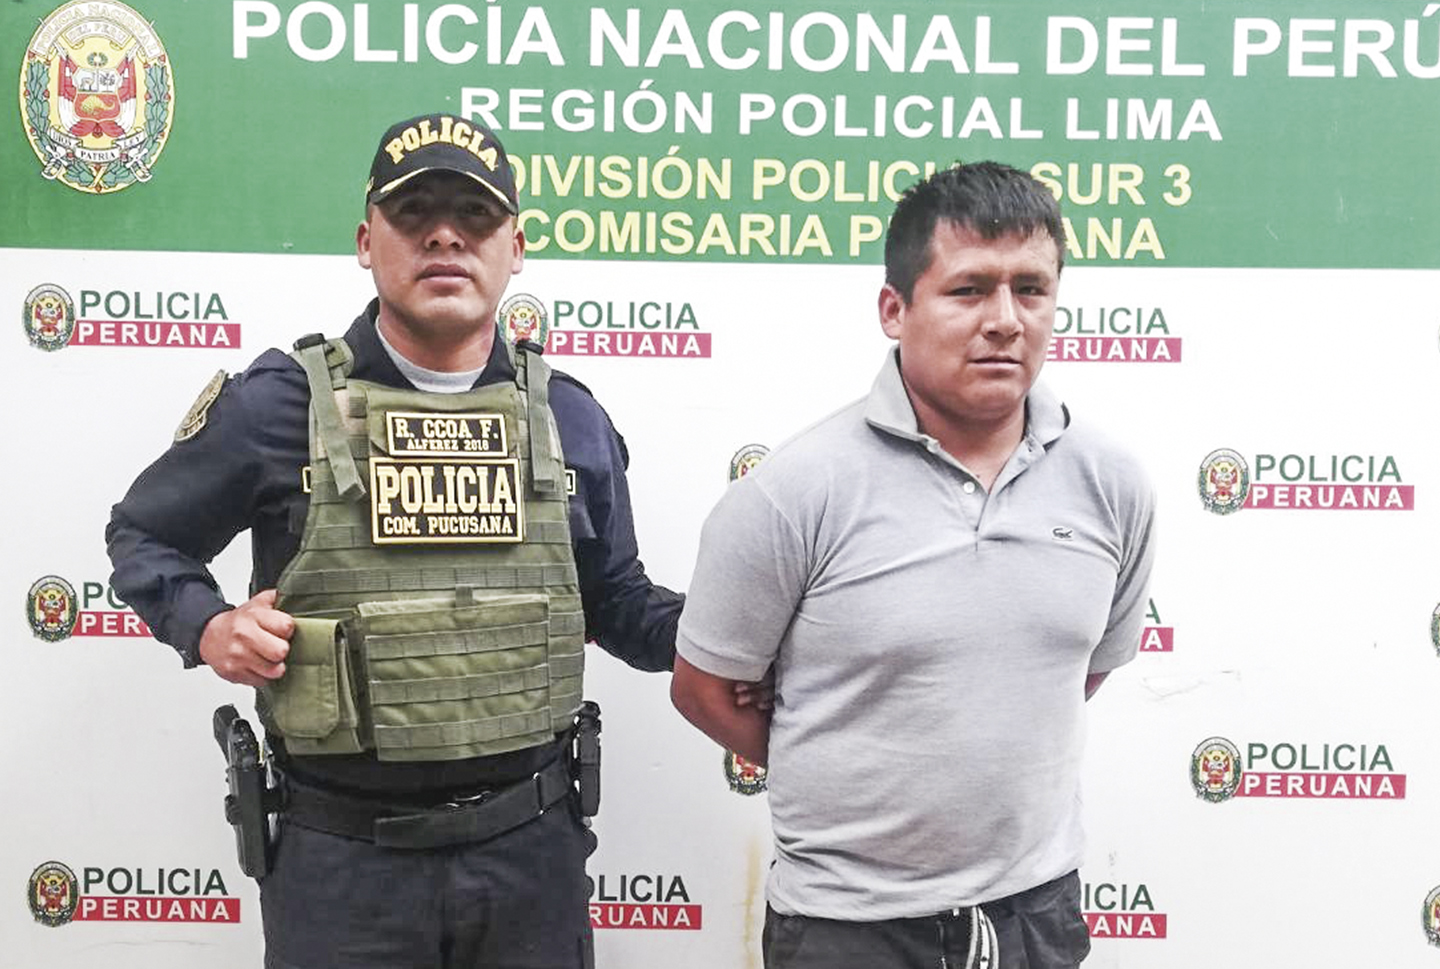 'Gordo Alex' detenido - Radio karibeña